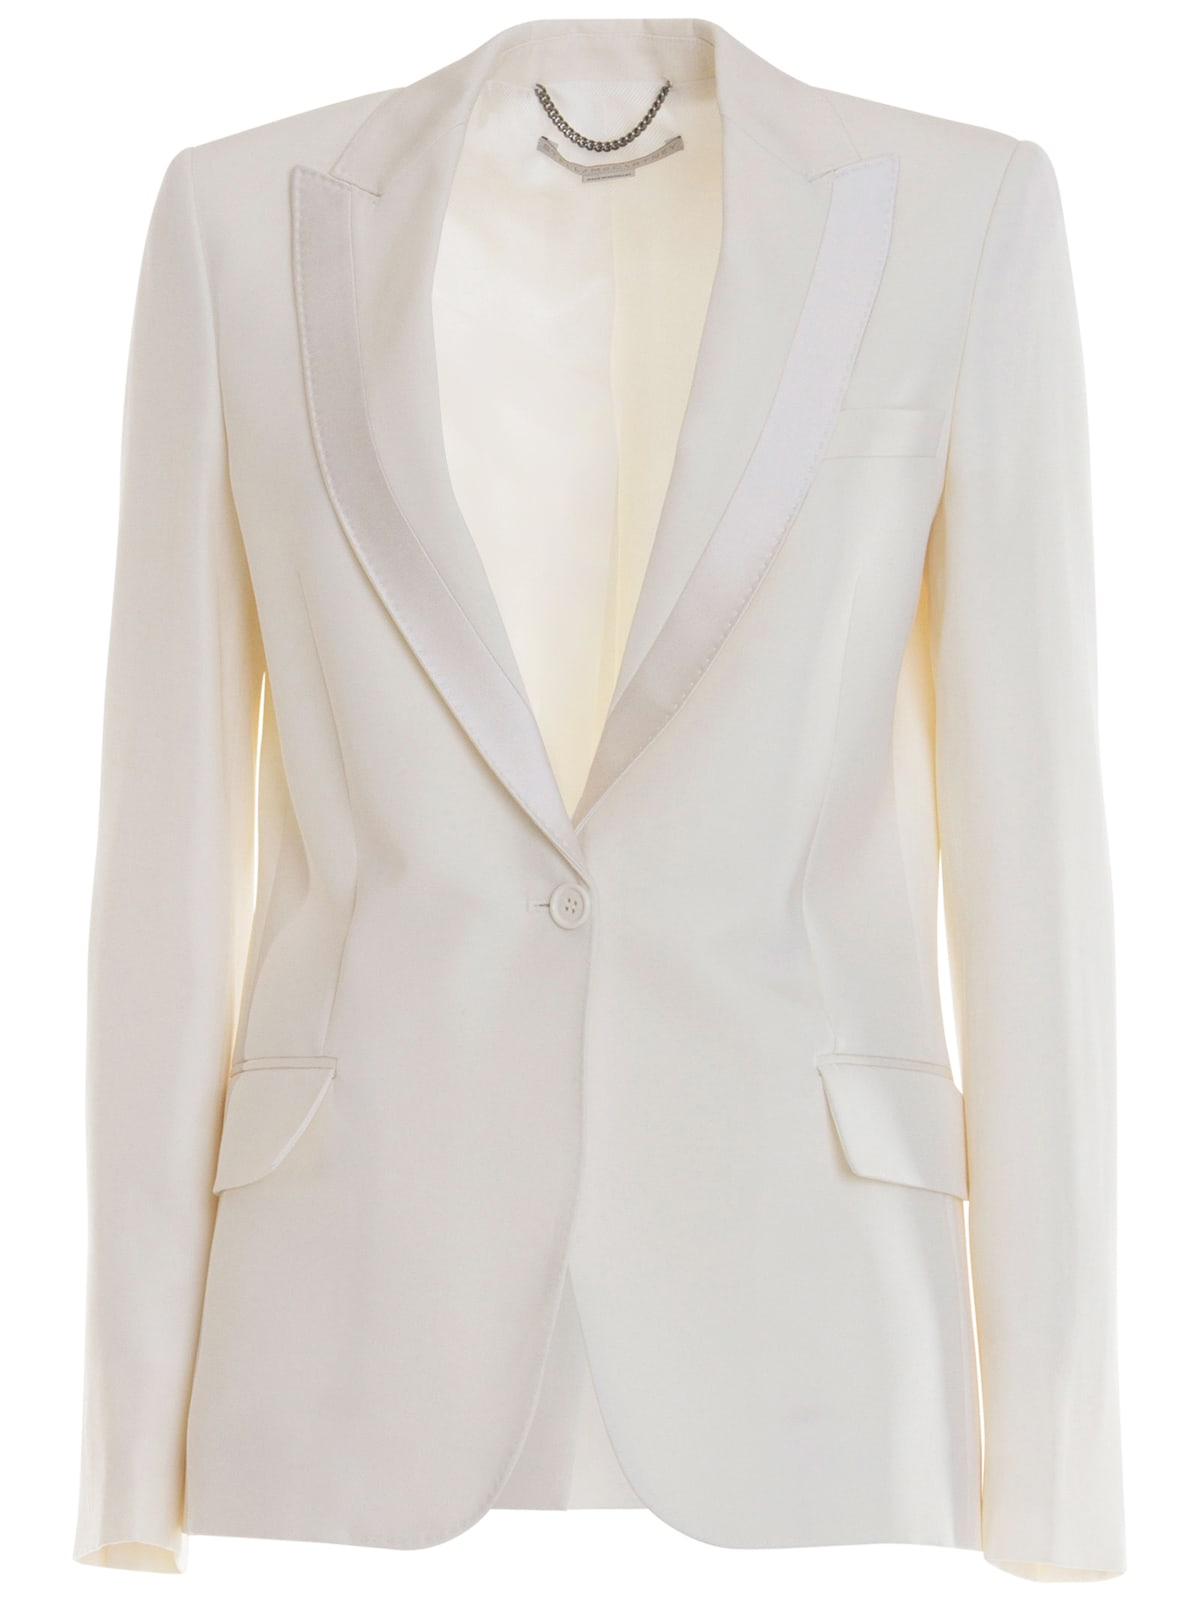 Stella Mccartney White Blazer